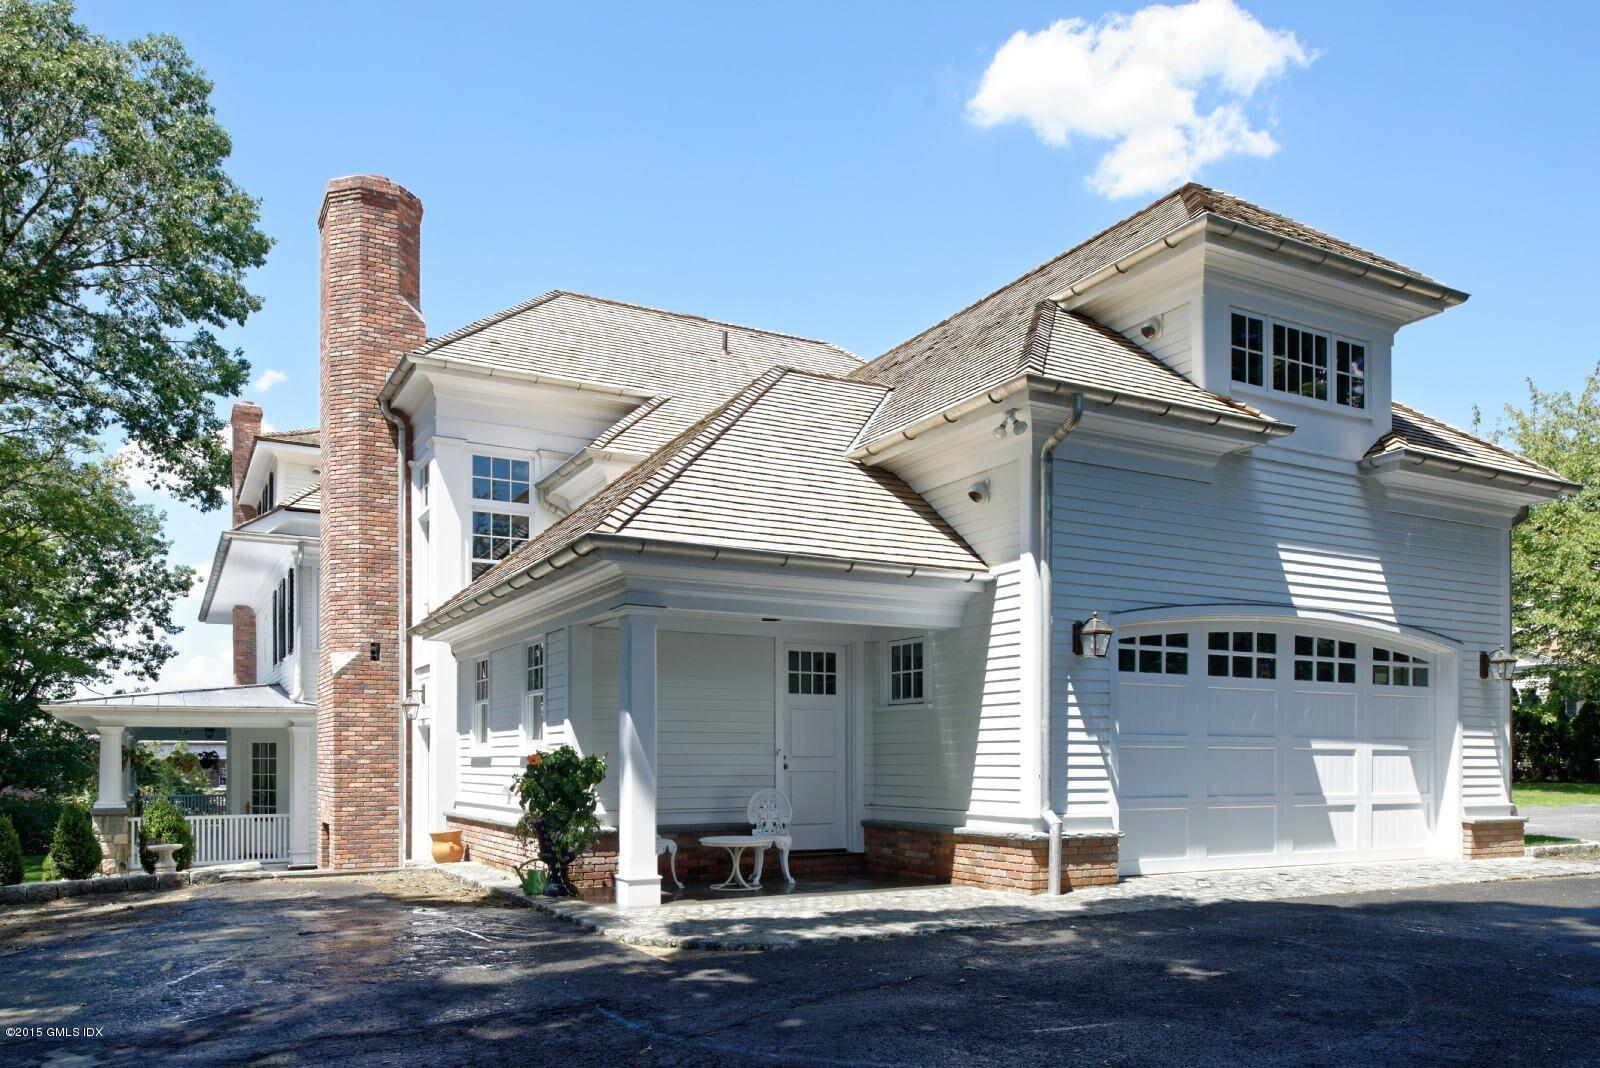 303 Milbank Avenue,Greenwich,Connecticut 06830,5 Bedrooms Bedrooms,7 BathroomsBathrooms,Single family,Milbank,105451